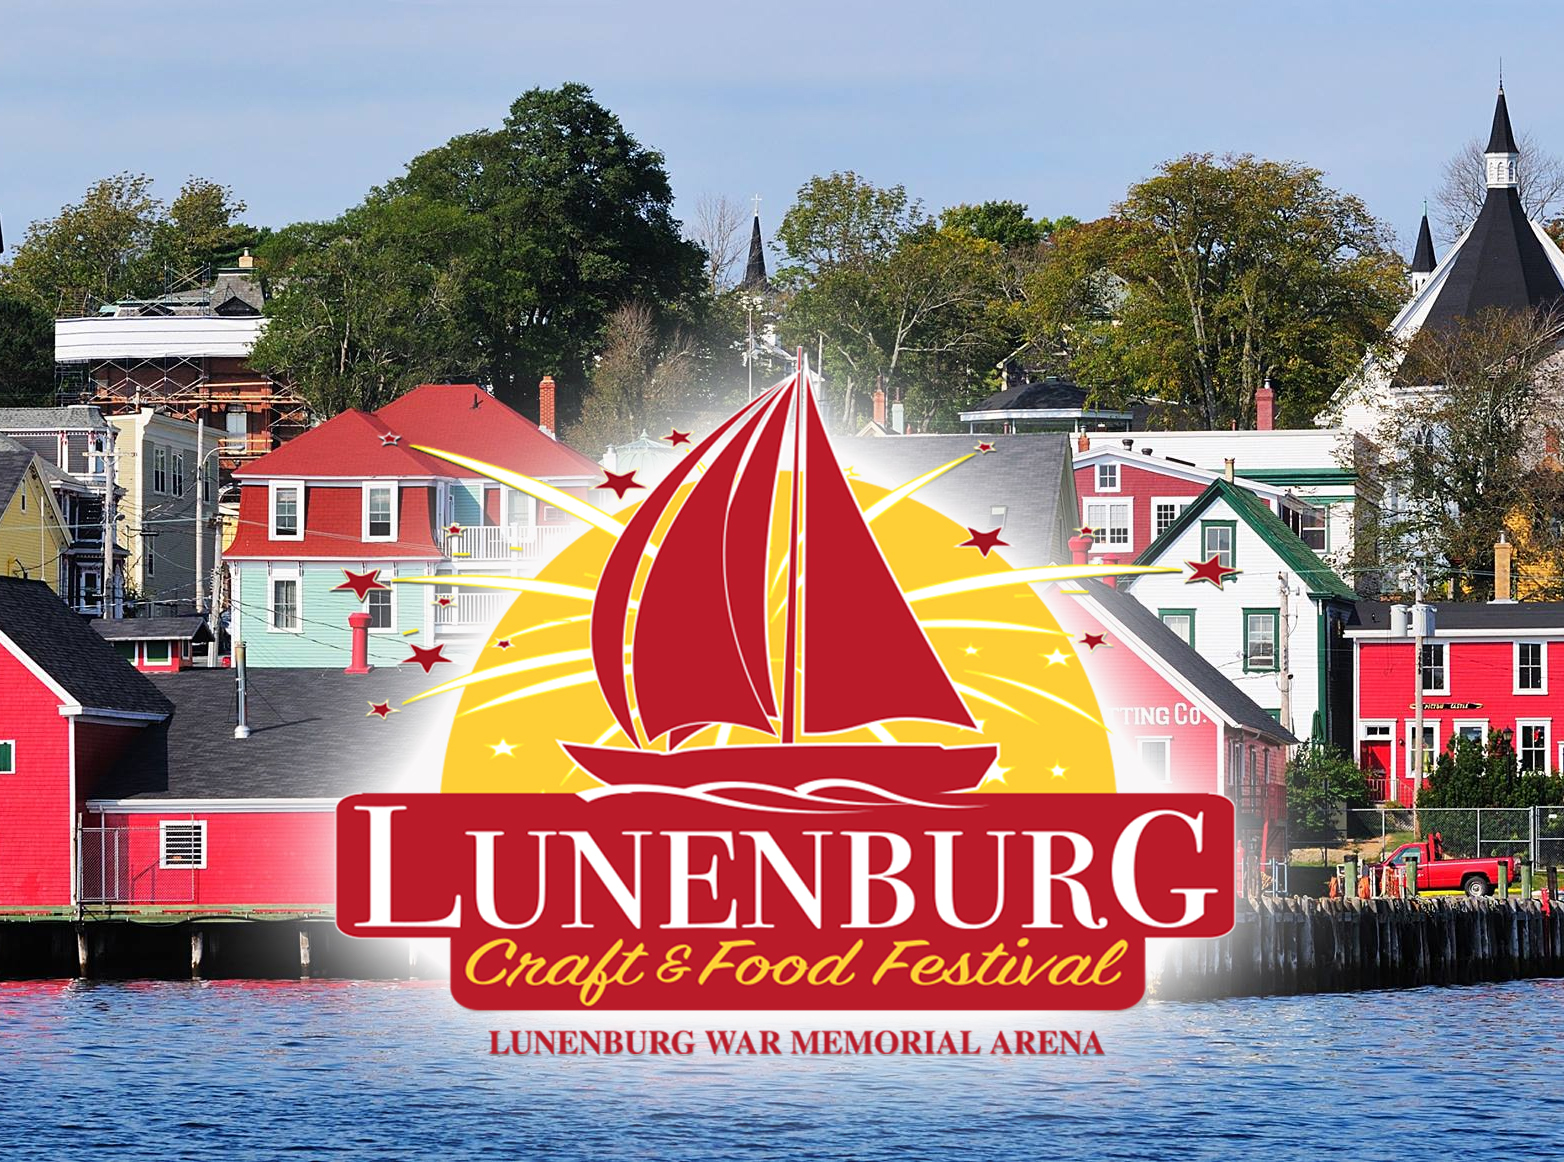 The 44rd Annual Lunenburg Craft and Food Festival